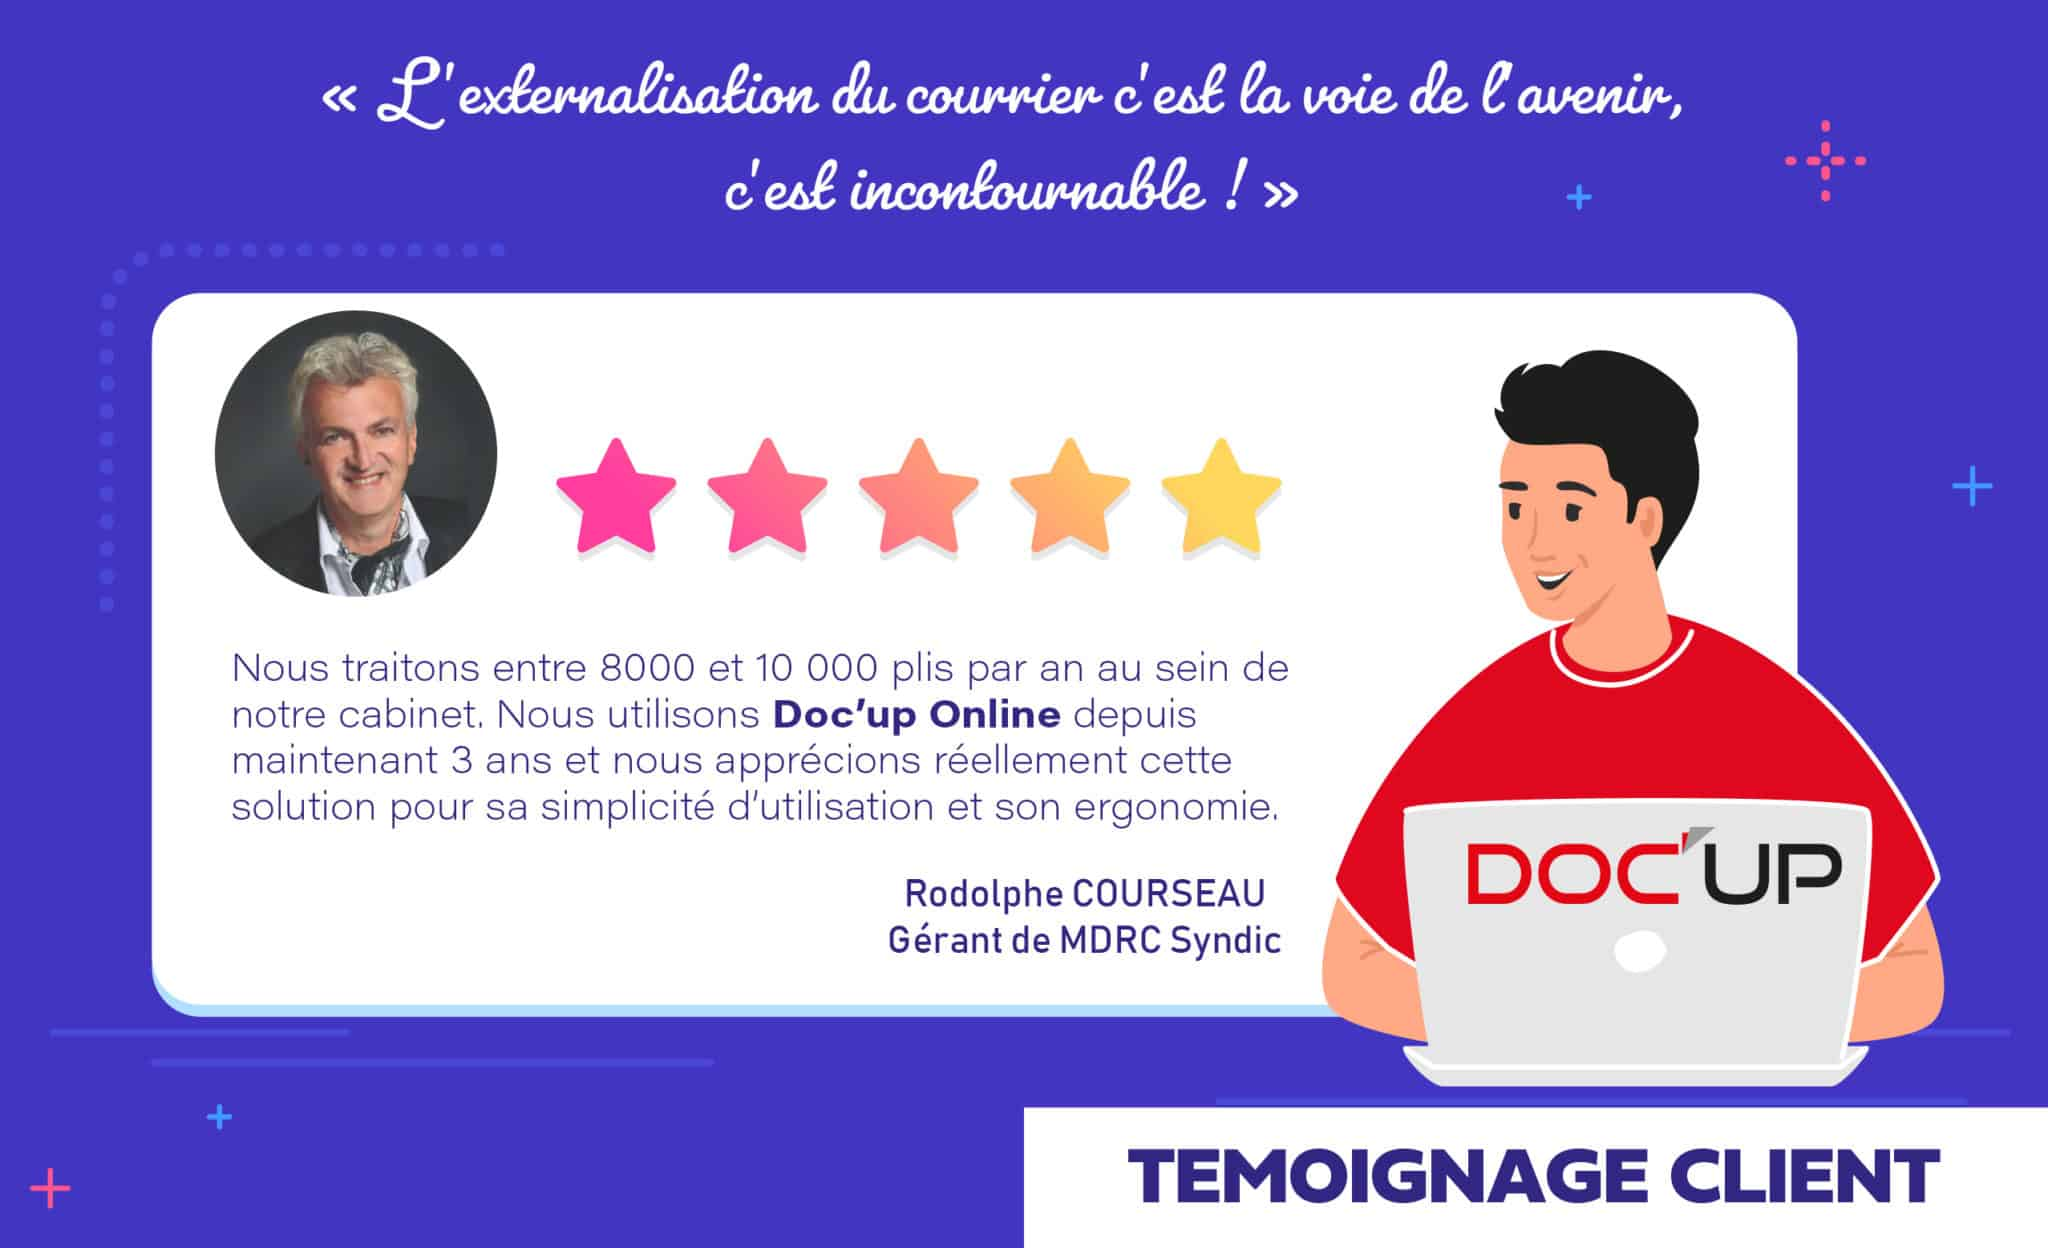 Témoignage client MDRC Syndic